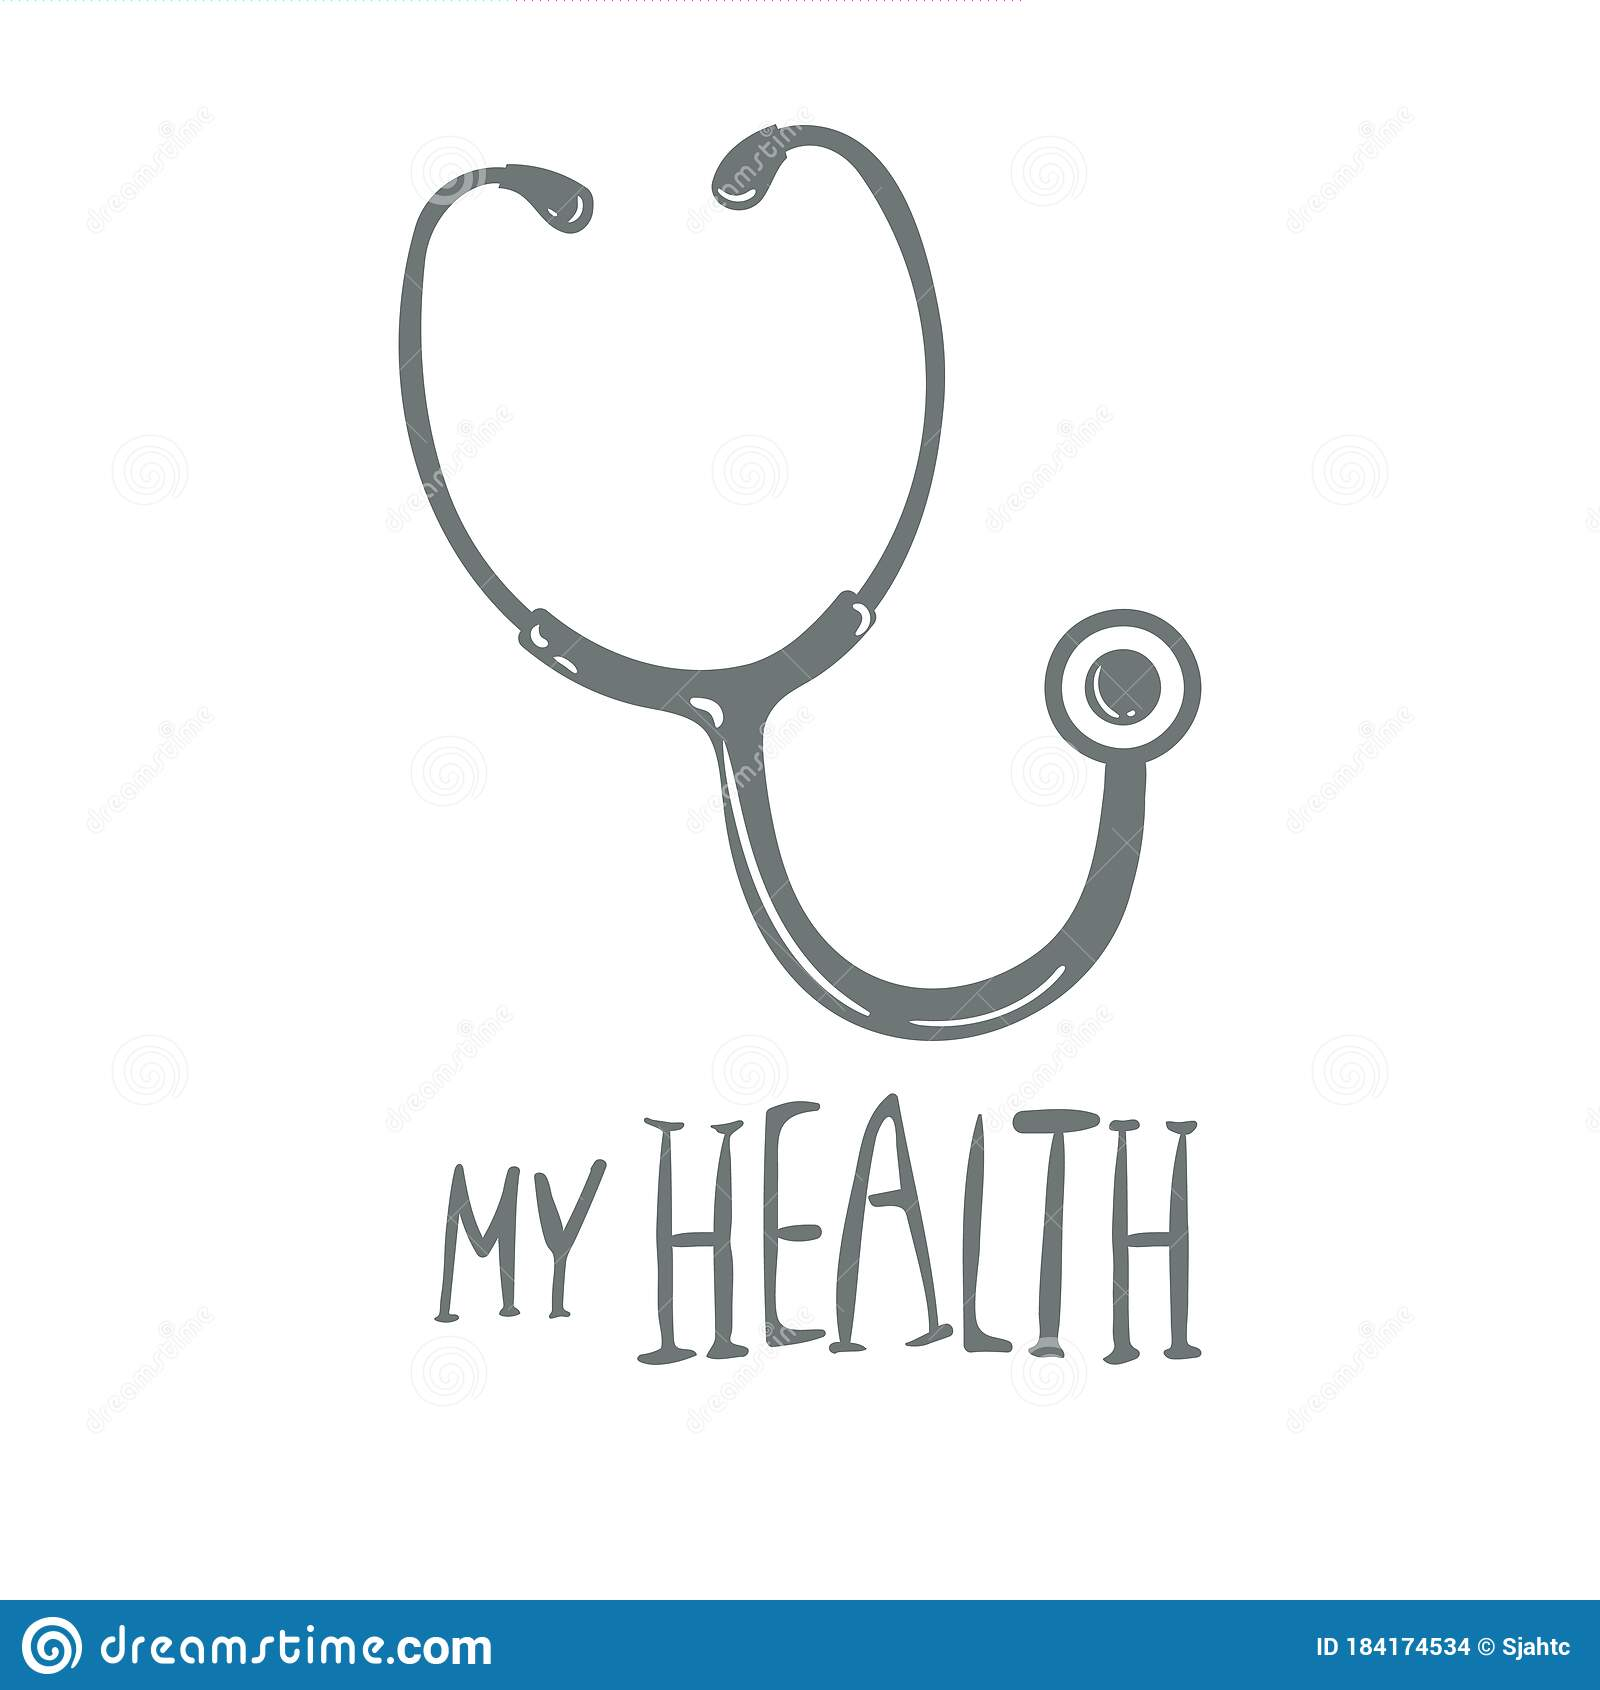 Stethoscope Or Steth - Medical Vector Icon Hand Drawing, Isolated On White.  With Words My Health Stock Vector - Illustration of hear, device: 184174534